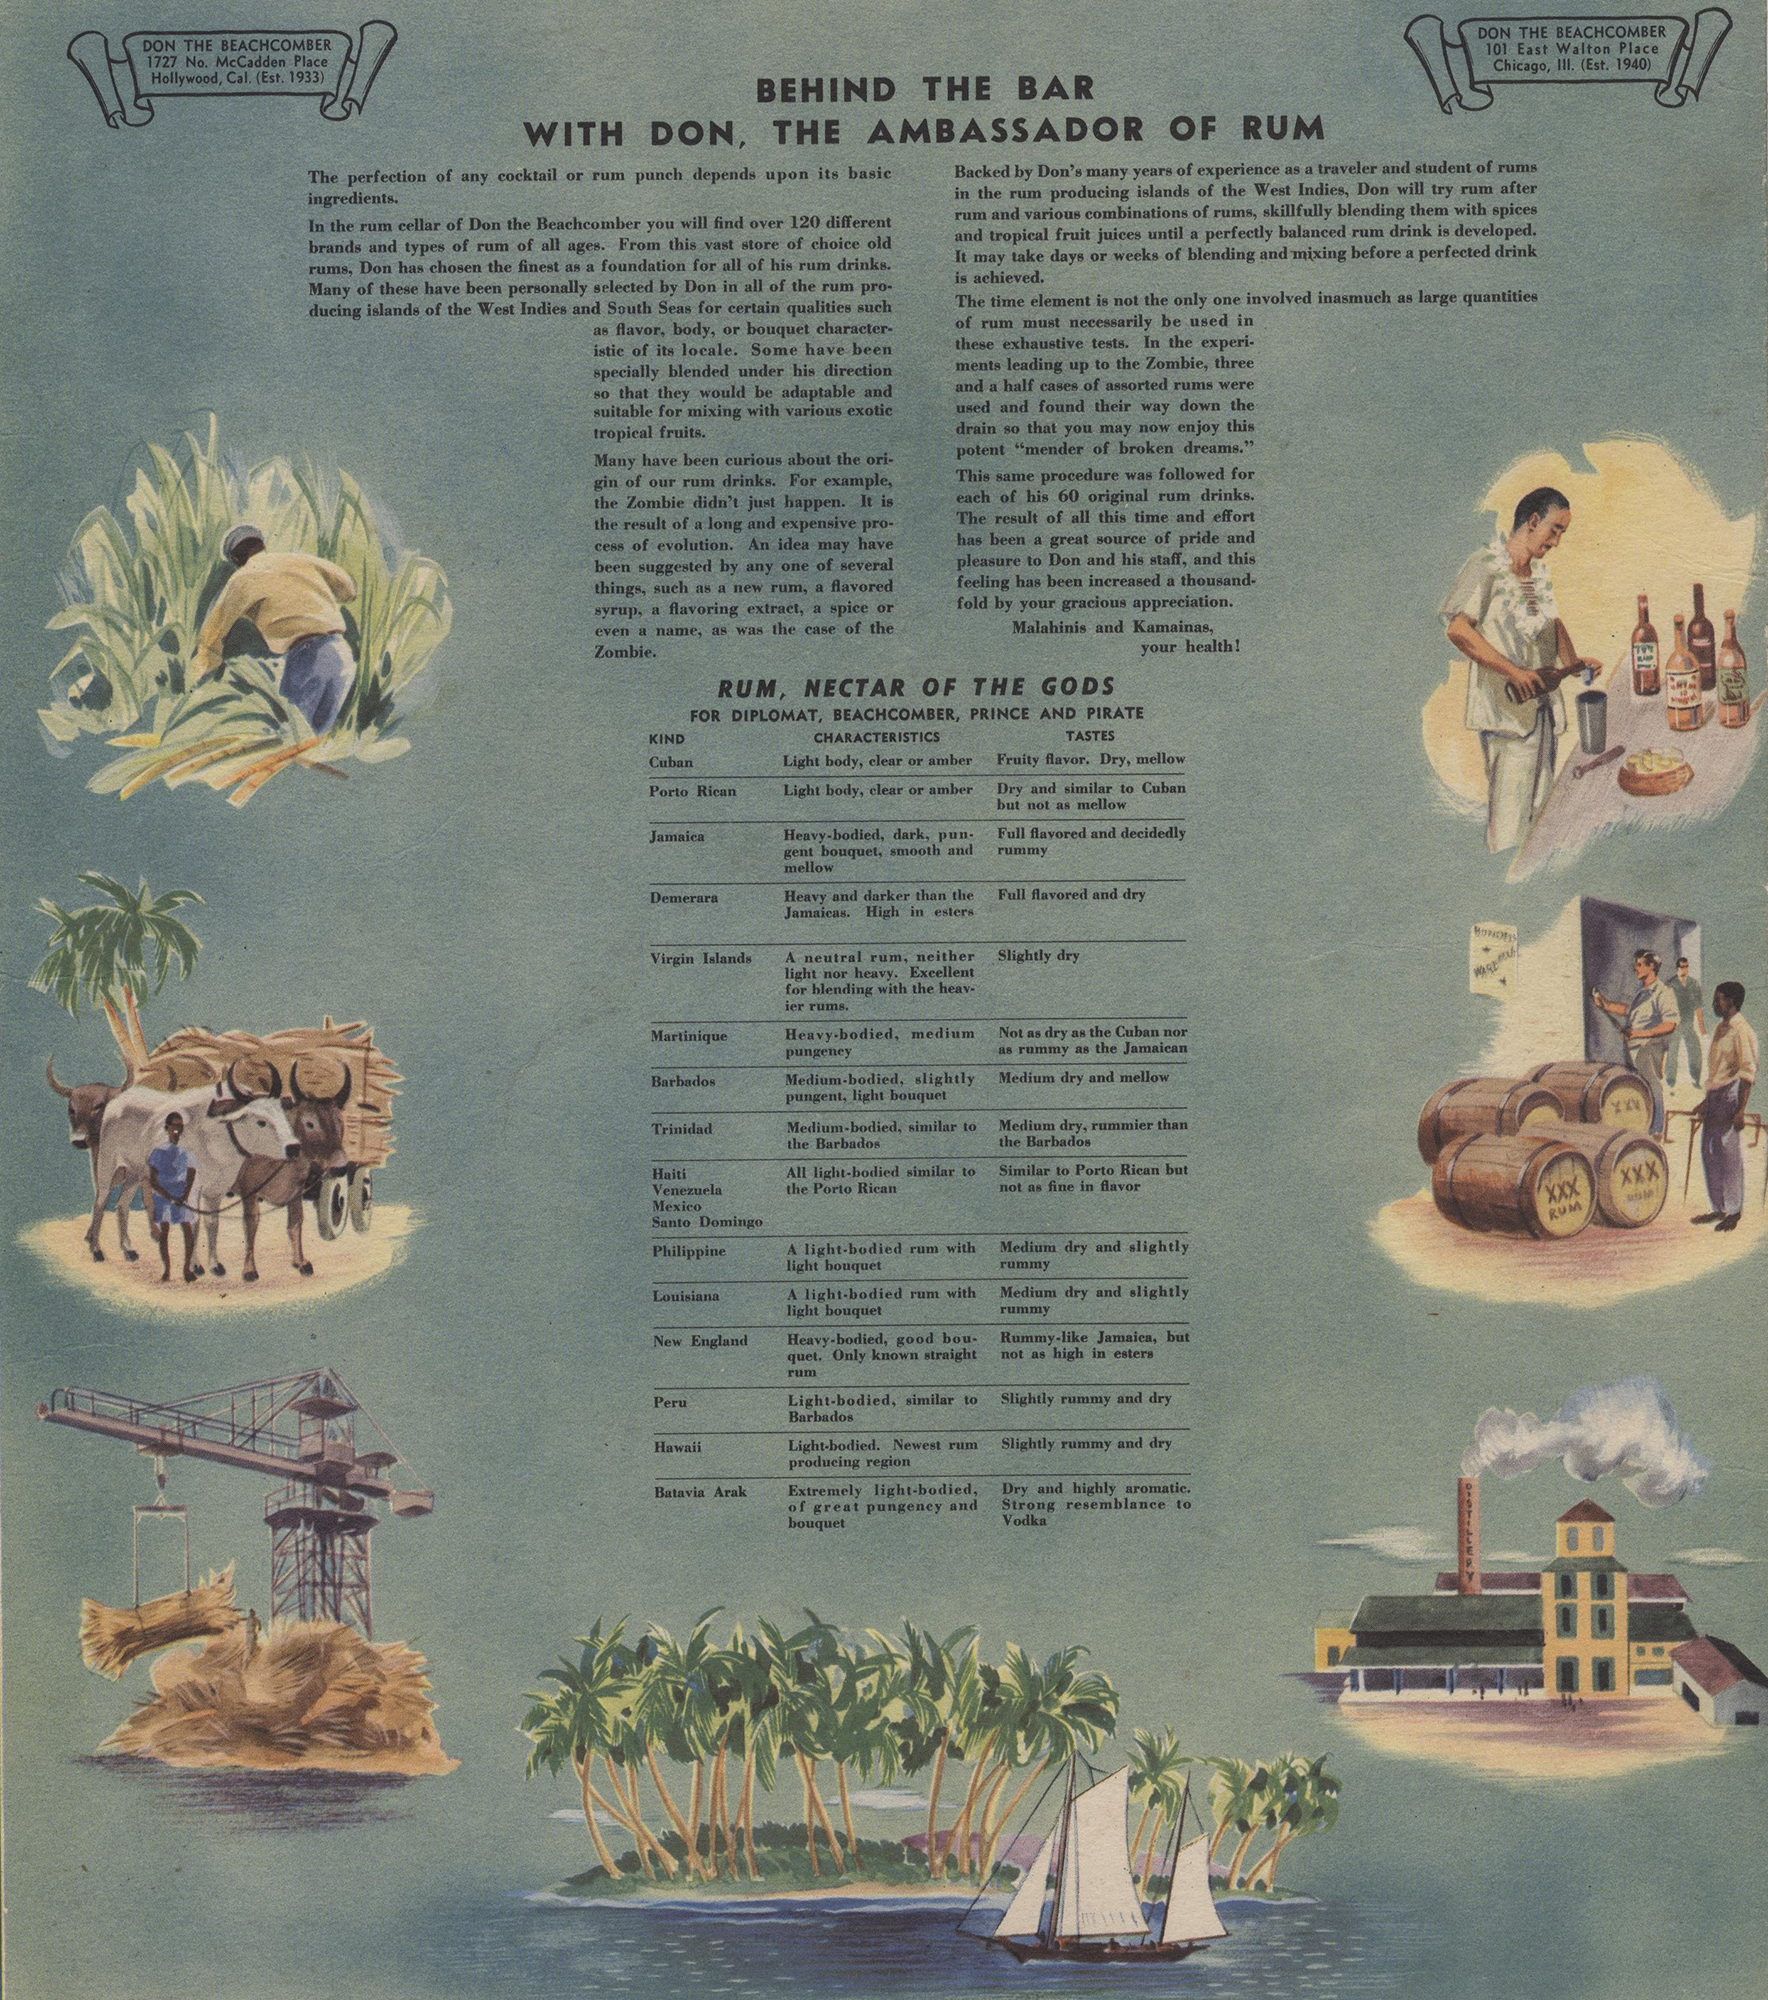 A 1941 rum menu from Don the Beachcomber in Chicago, where mixologist Mariano Licudine worked for 16 years before starting The Mai-Kai's bar program with owners Bob and Jack Thornton in 1956.